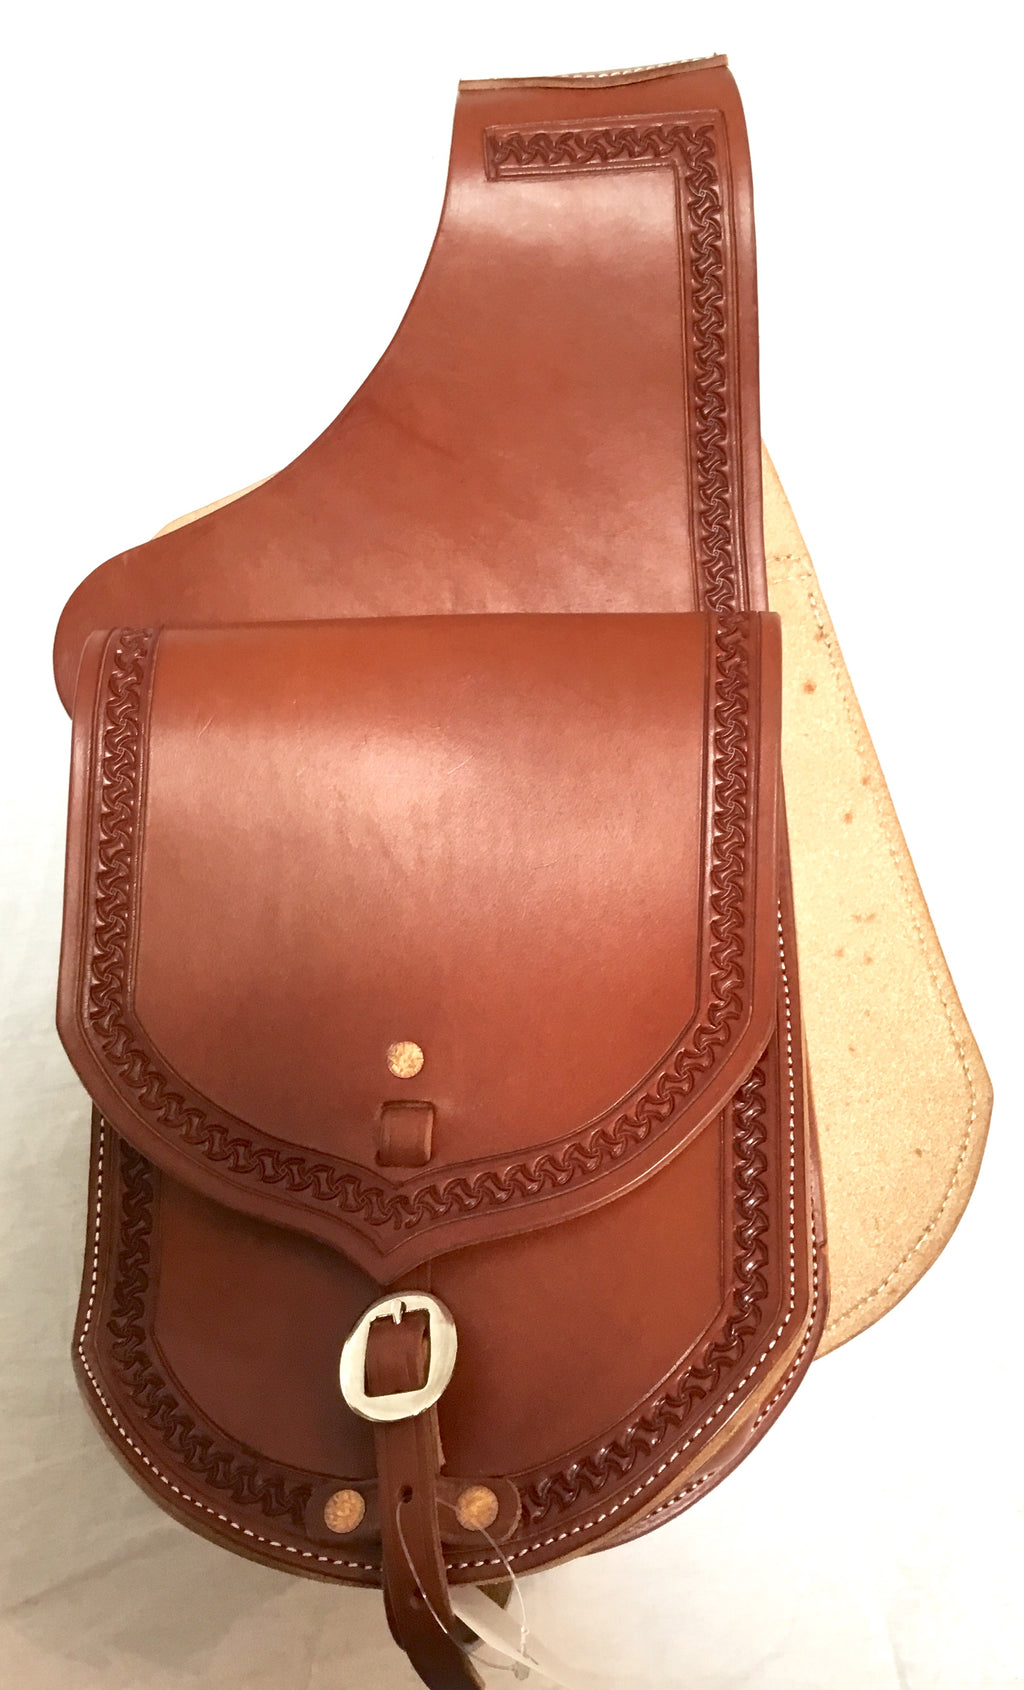 Premium Leather Saddle Bag with Hand Tooled Border- 9""